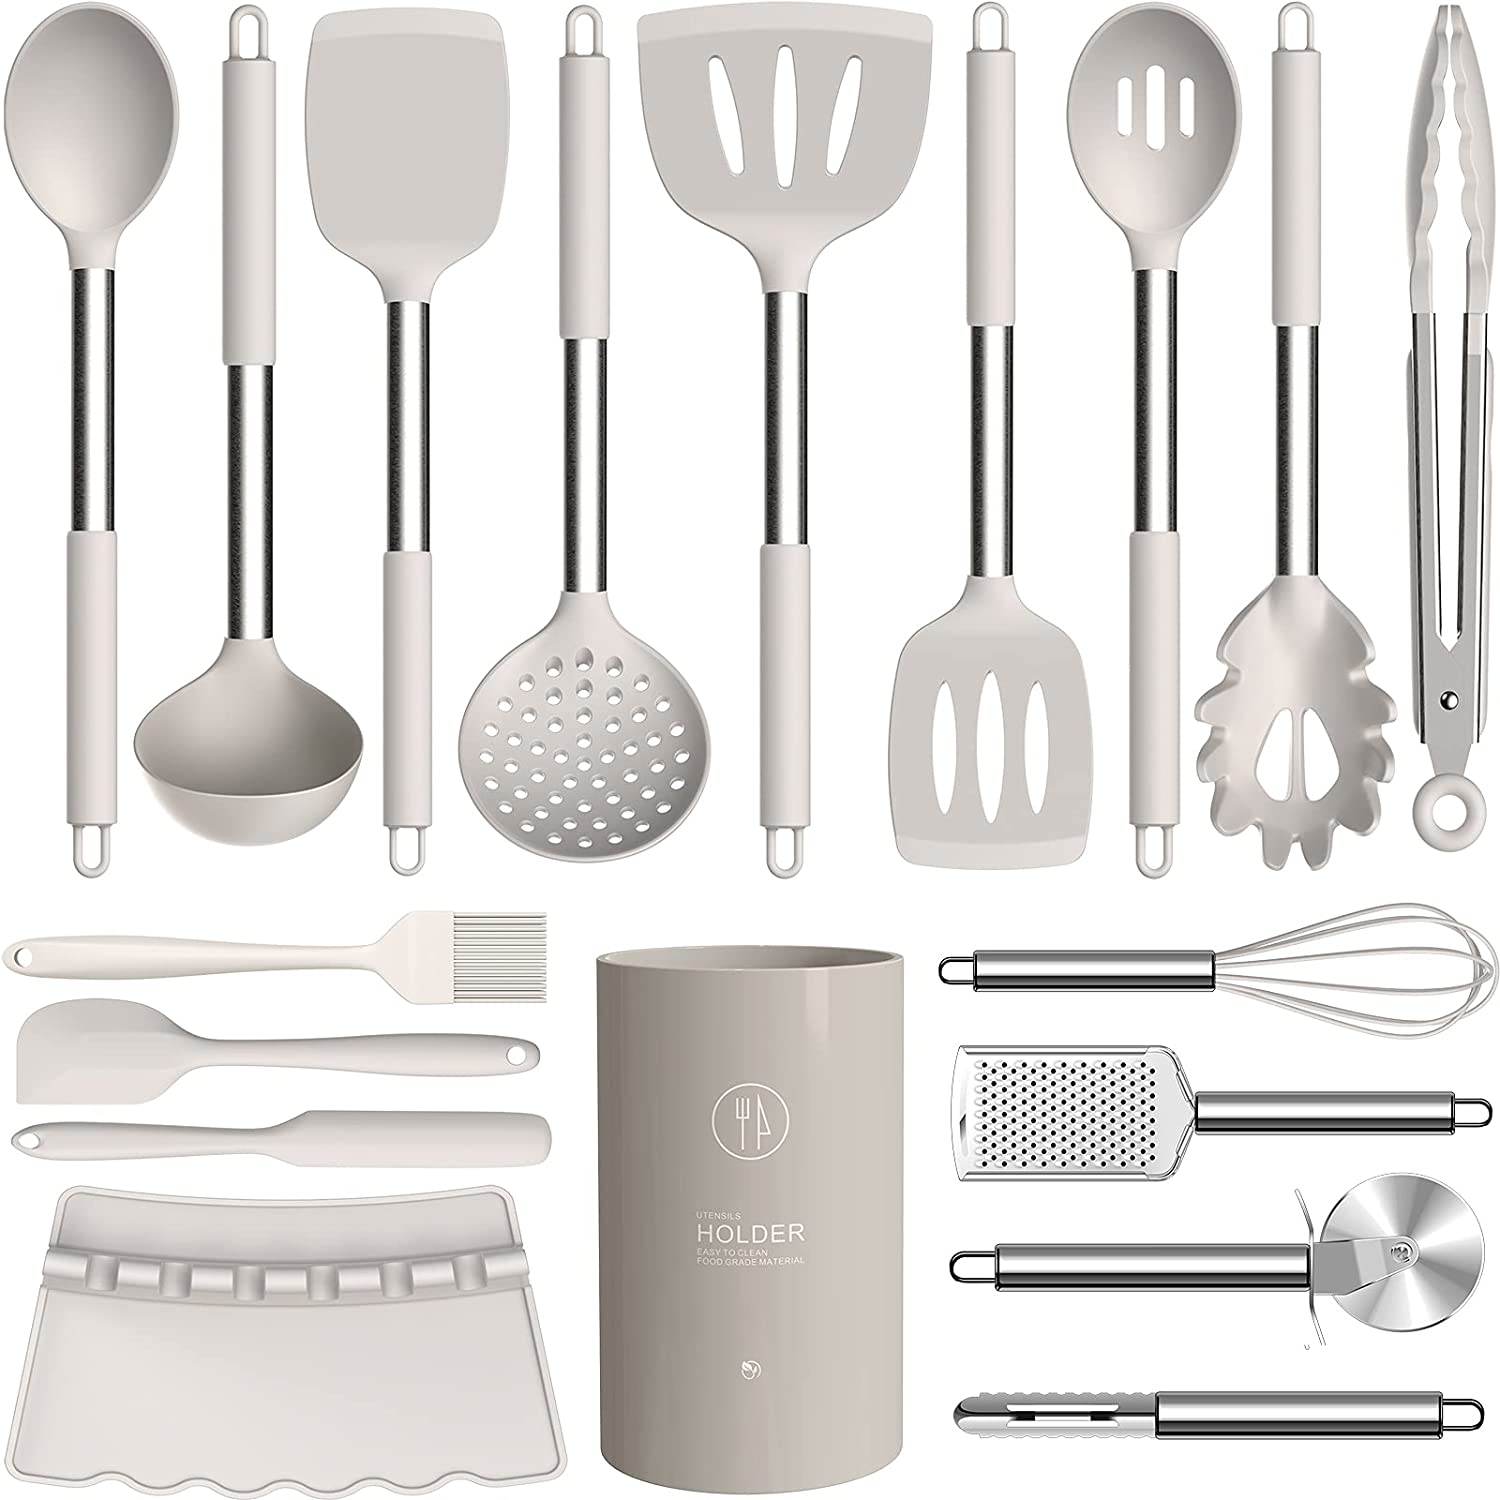 Silicone Cooking Utensils Set - Heat Resistant Kitchen Utensils,Turner Tongs,Spatula,Spoon,Brush,Whisk.Stainless Steel Khaki Silicone Cooking Tool for Nonstick Cookware.Dishwasher Friendly. (Large)